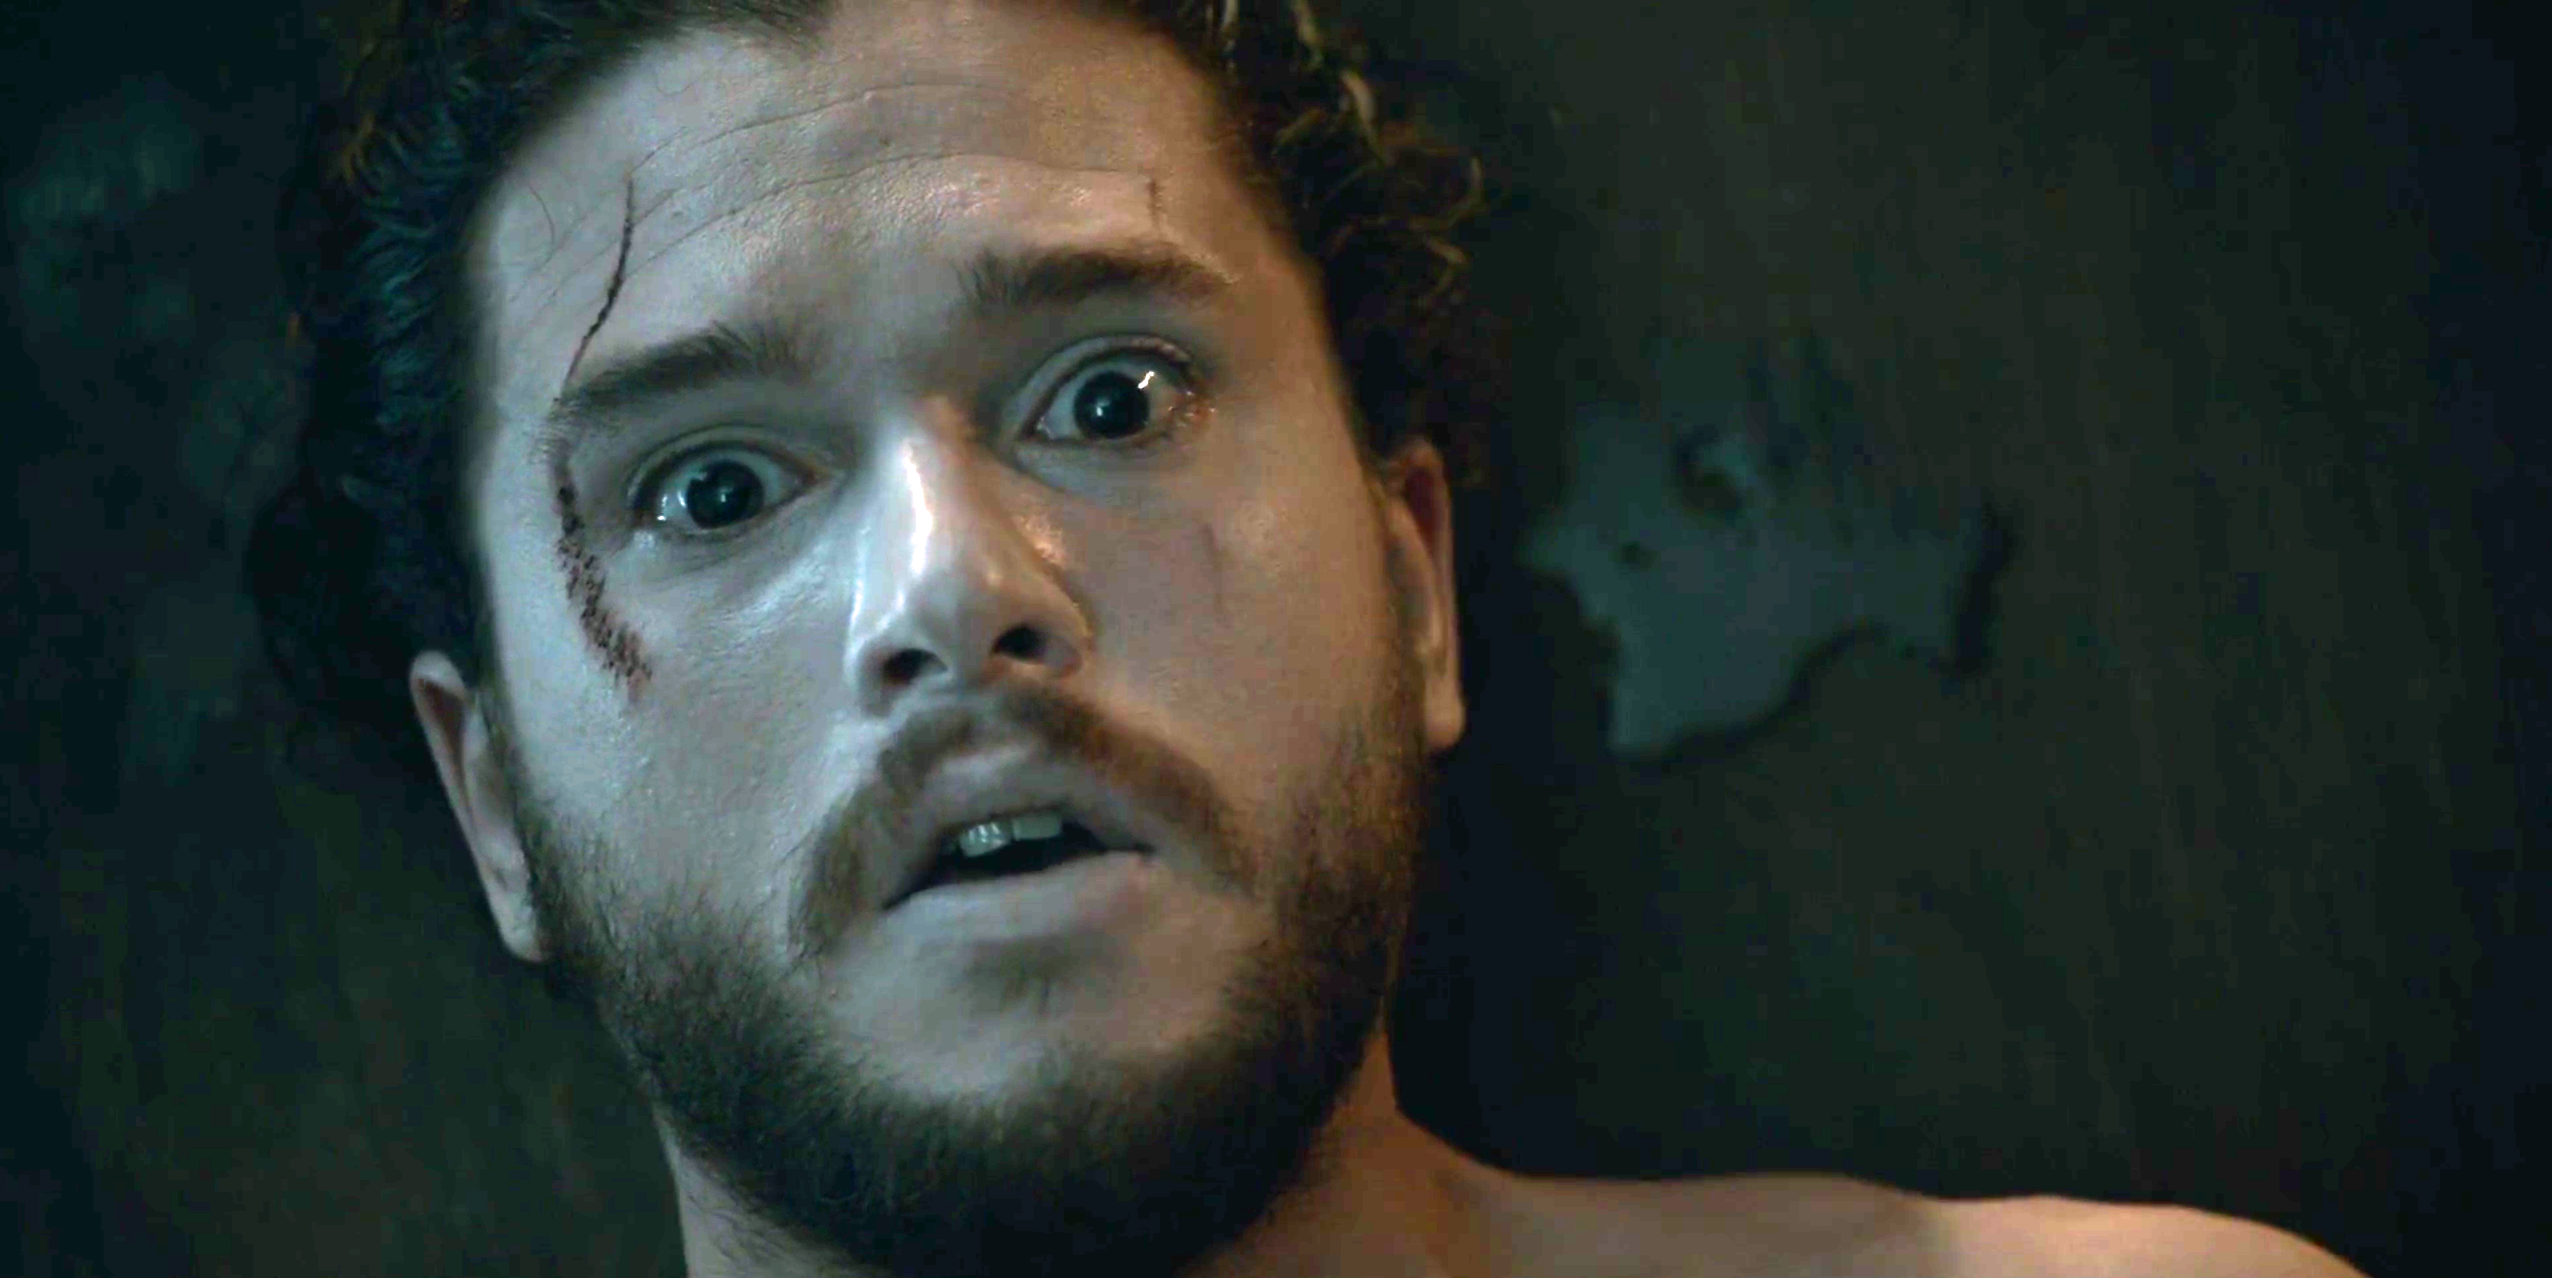 We Probably Already Know the 'Game of Thrones' Season 8, Episode 3 Title